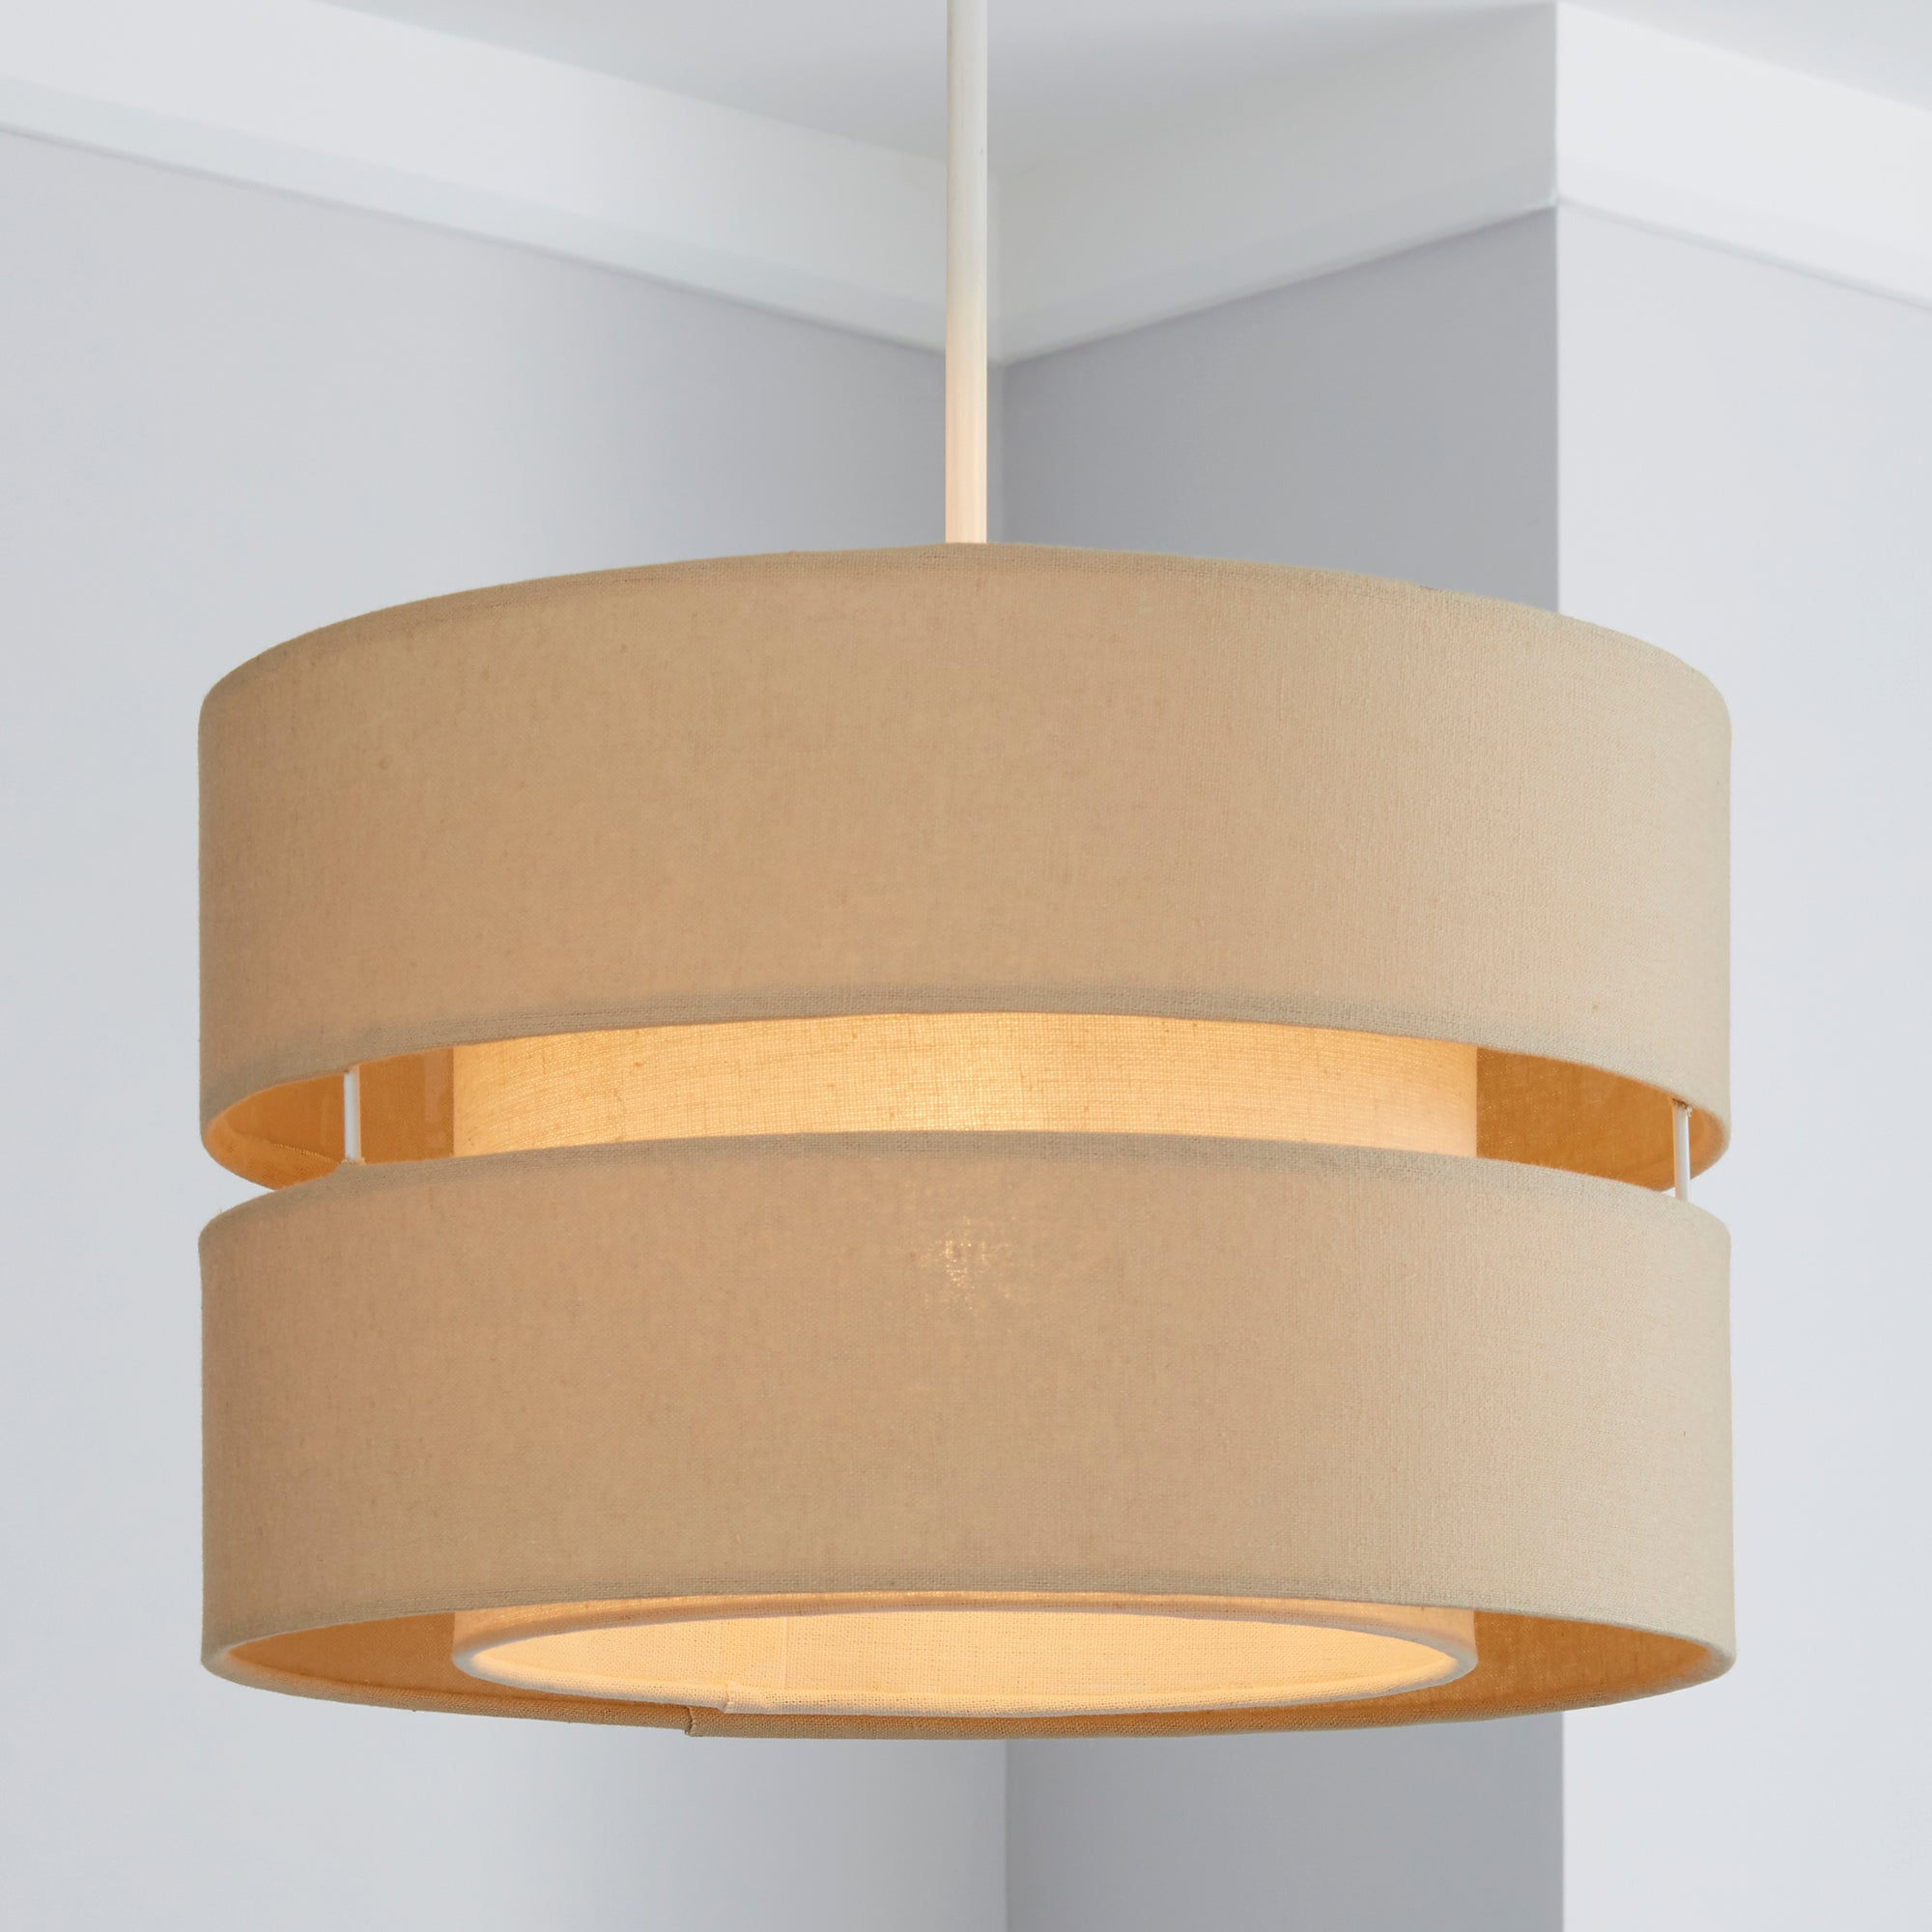 buy cheap pendant light shade compare lighting prices for best uk